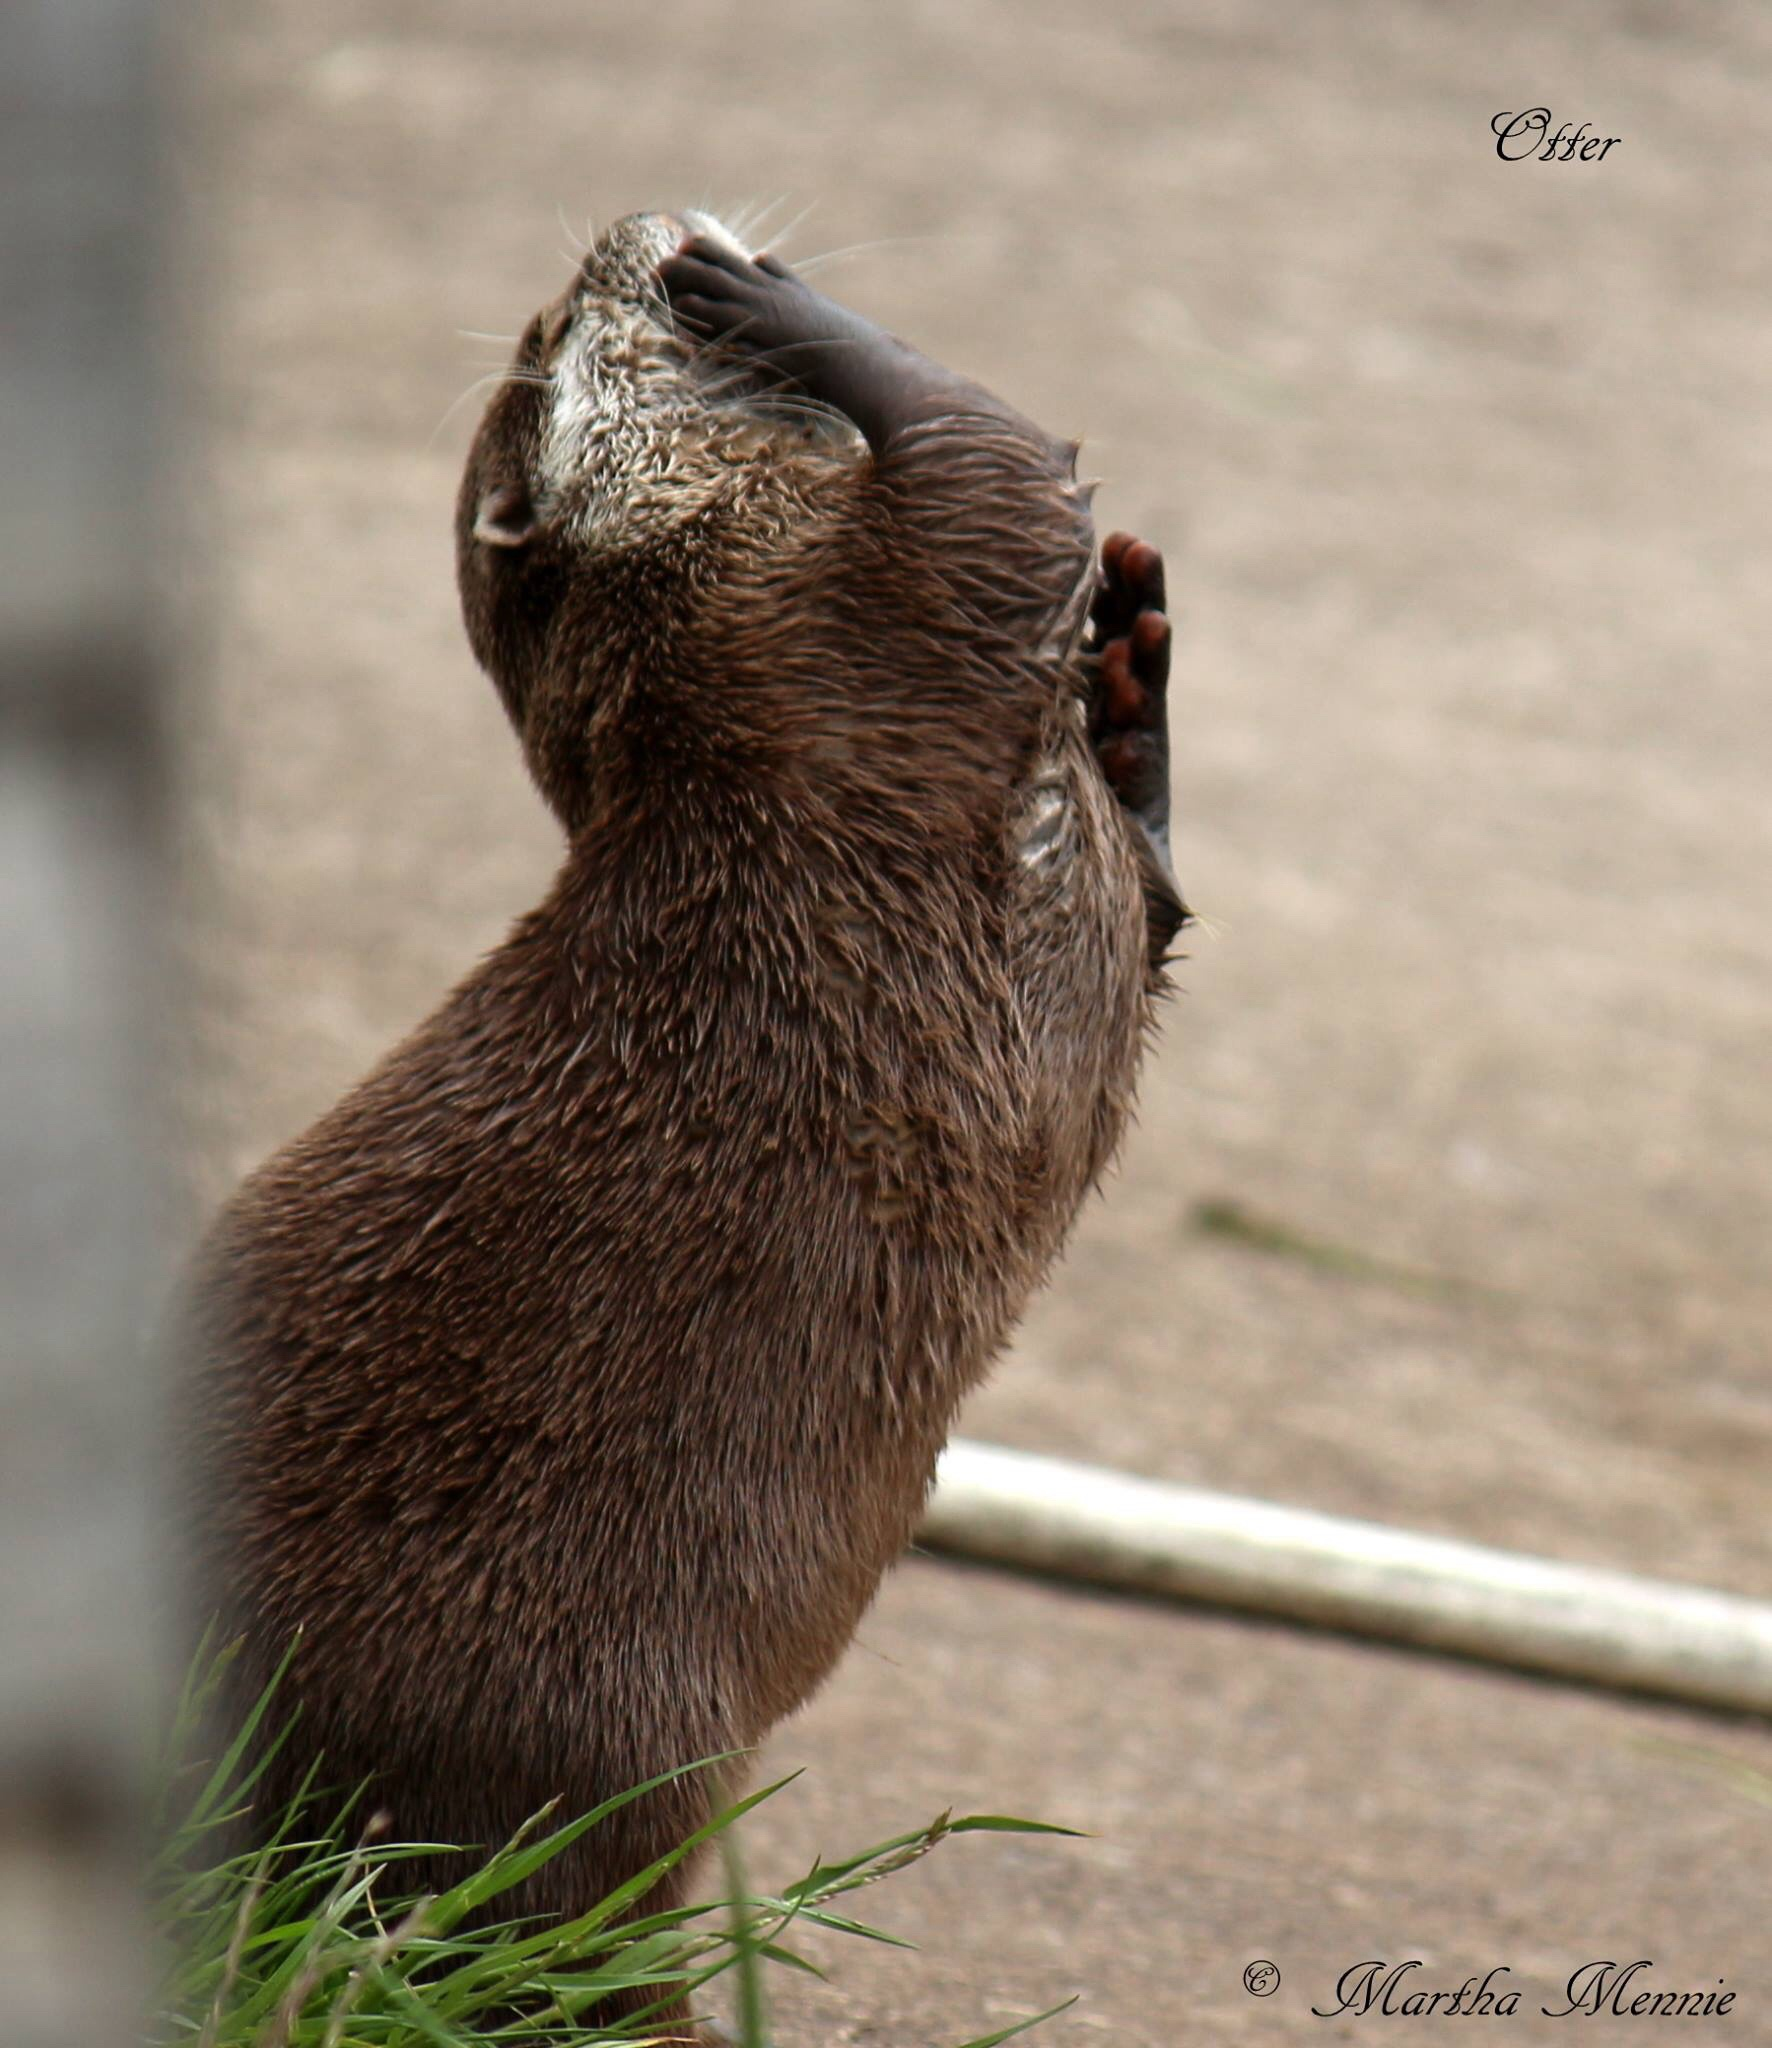 Otter by Marf